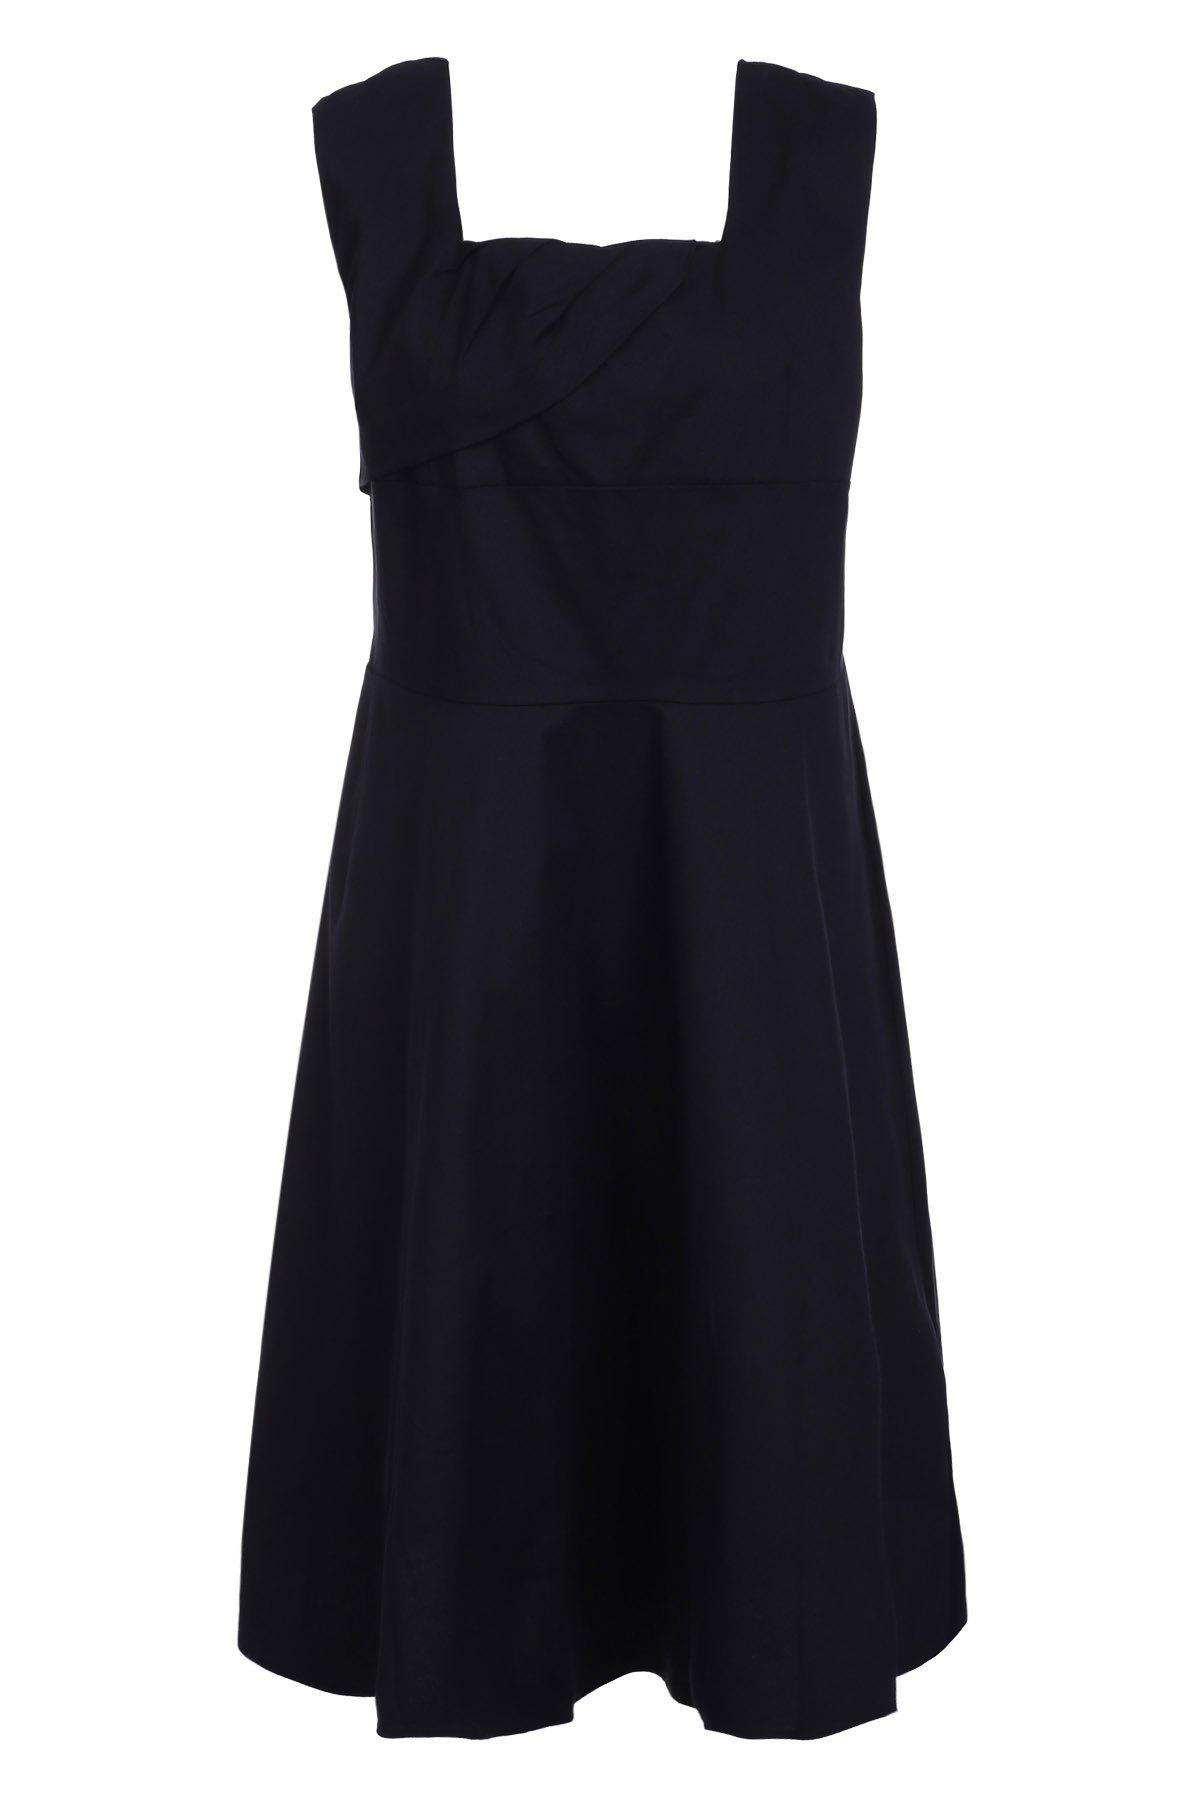 Retro Style Square Neck Sleeveless Solid Color Ball Gown Dress Women S